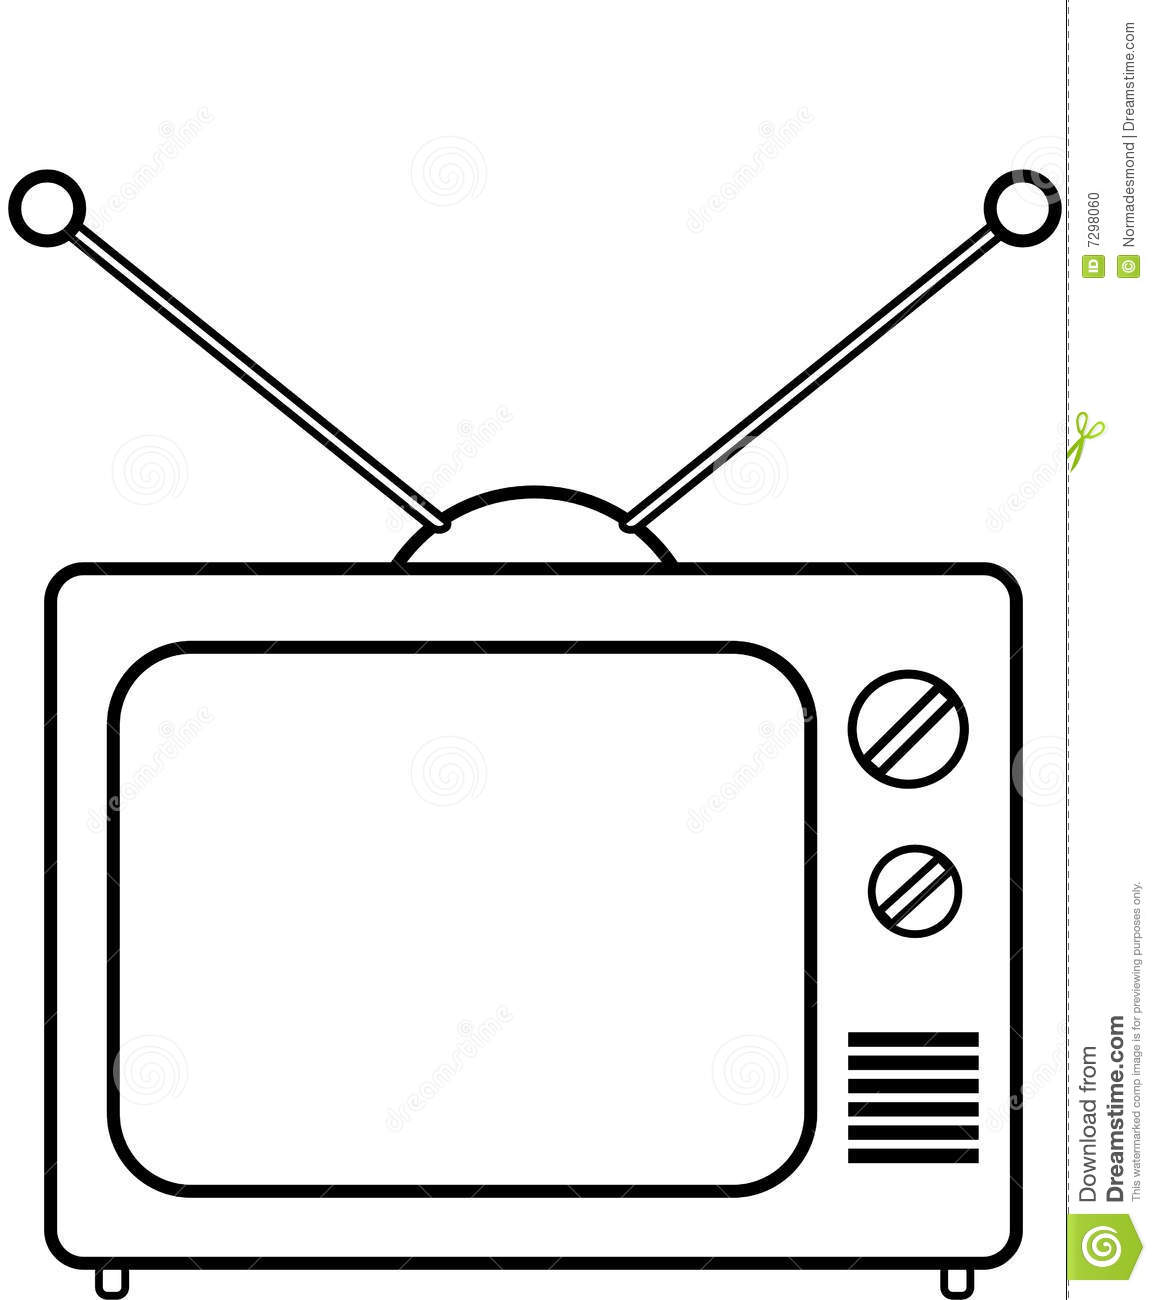 tv clipart Colouring Pages